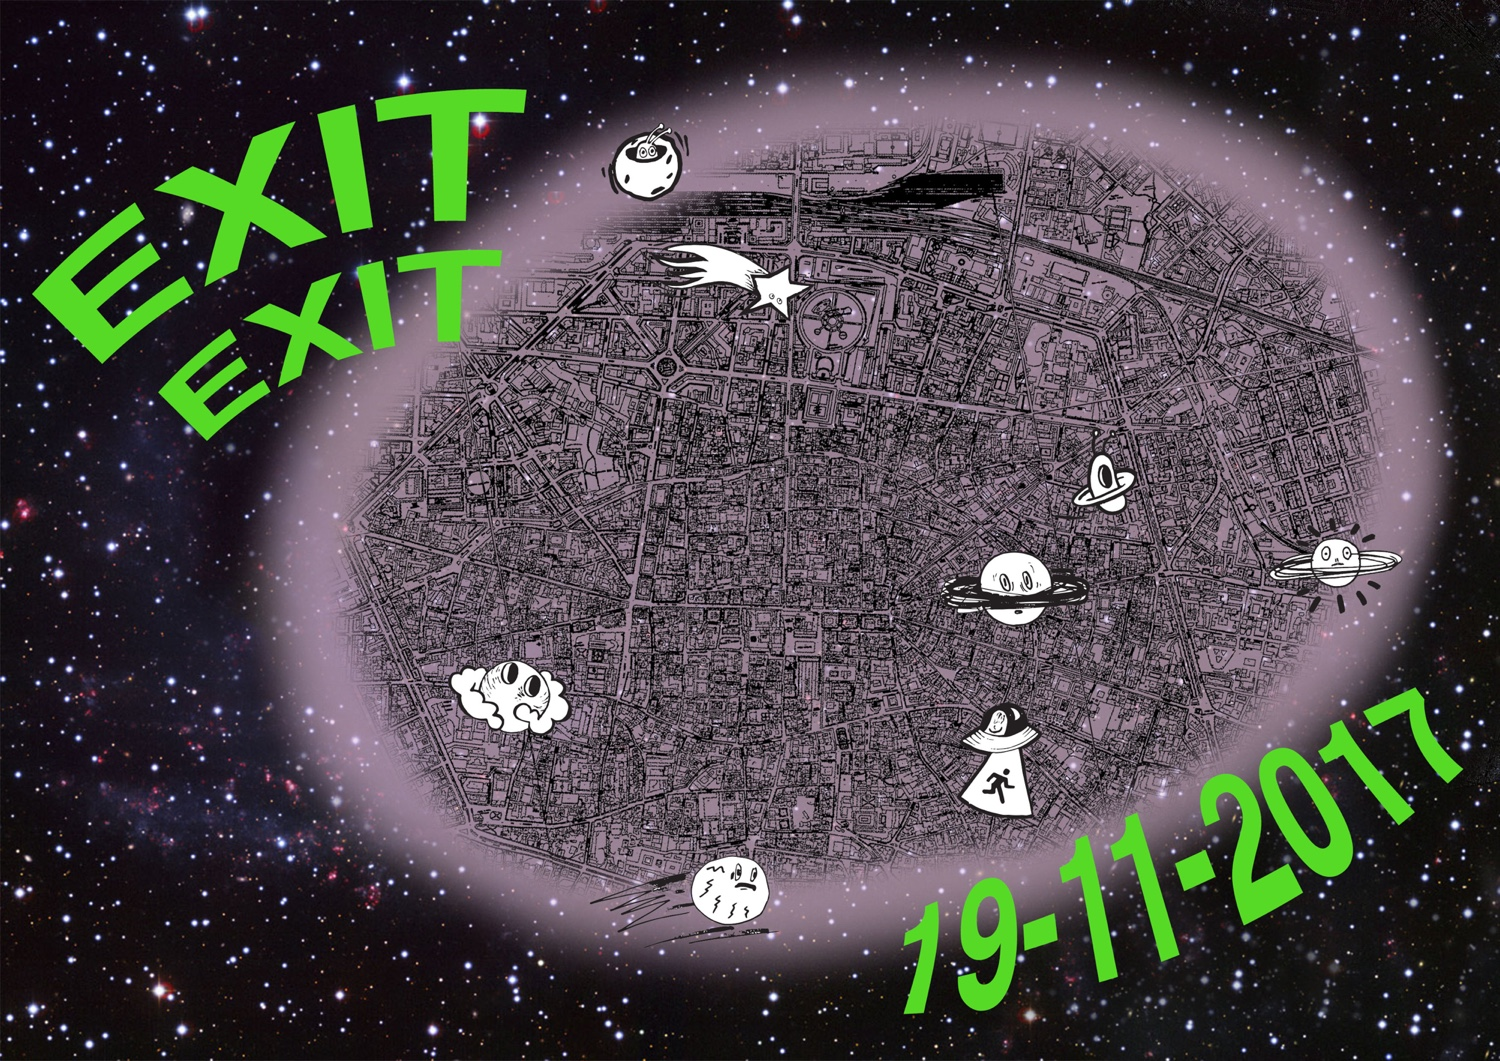 Festival 20 30 OFF: EXIT